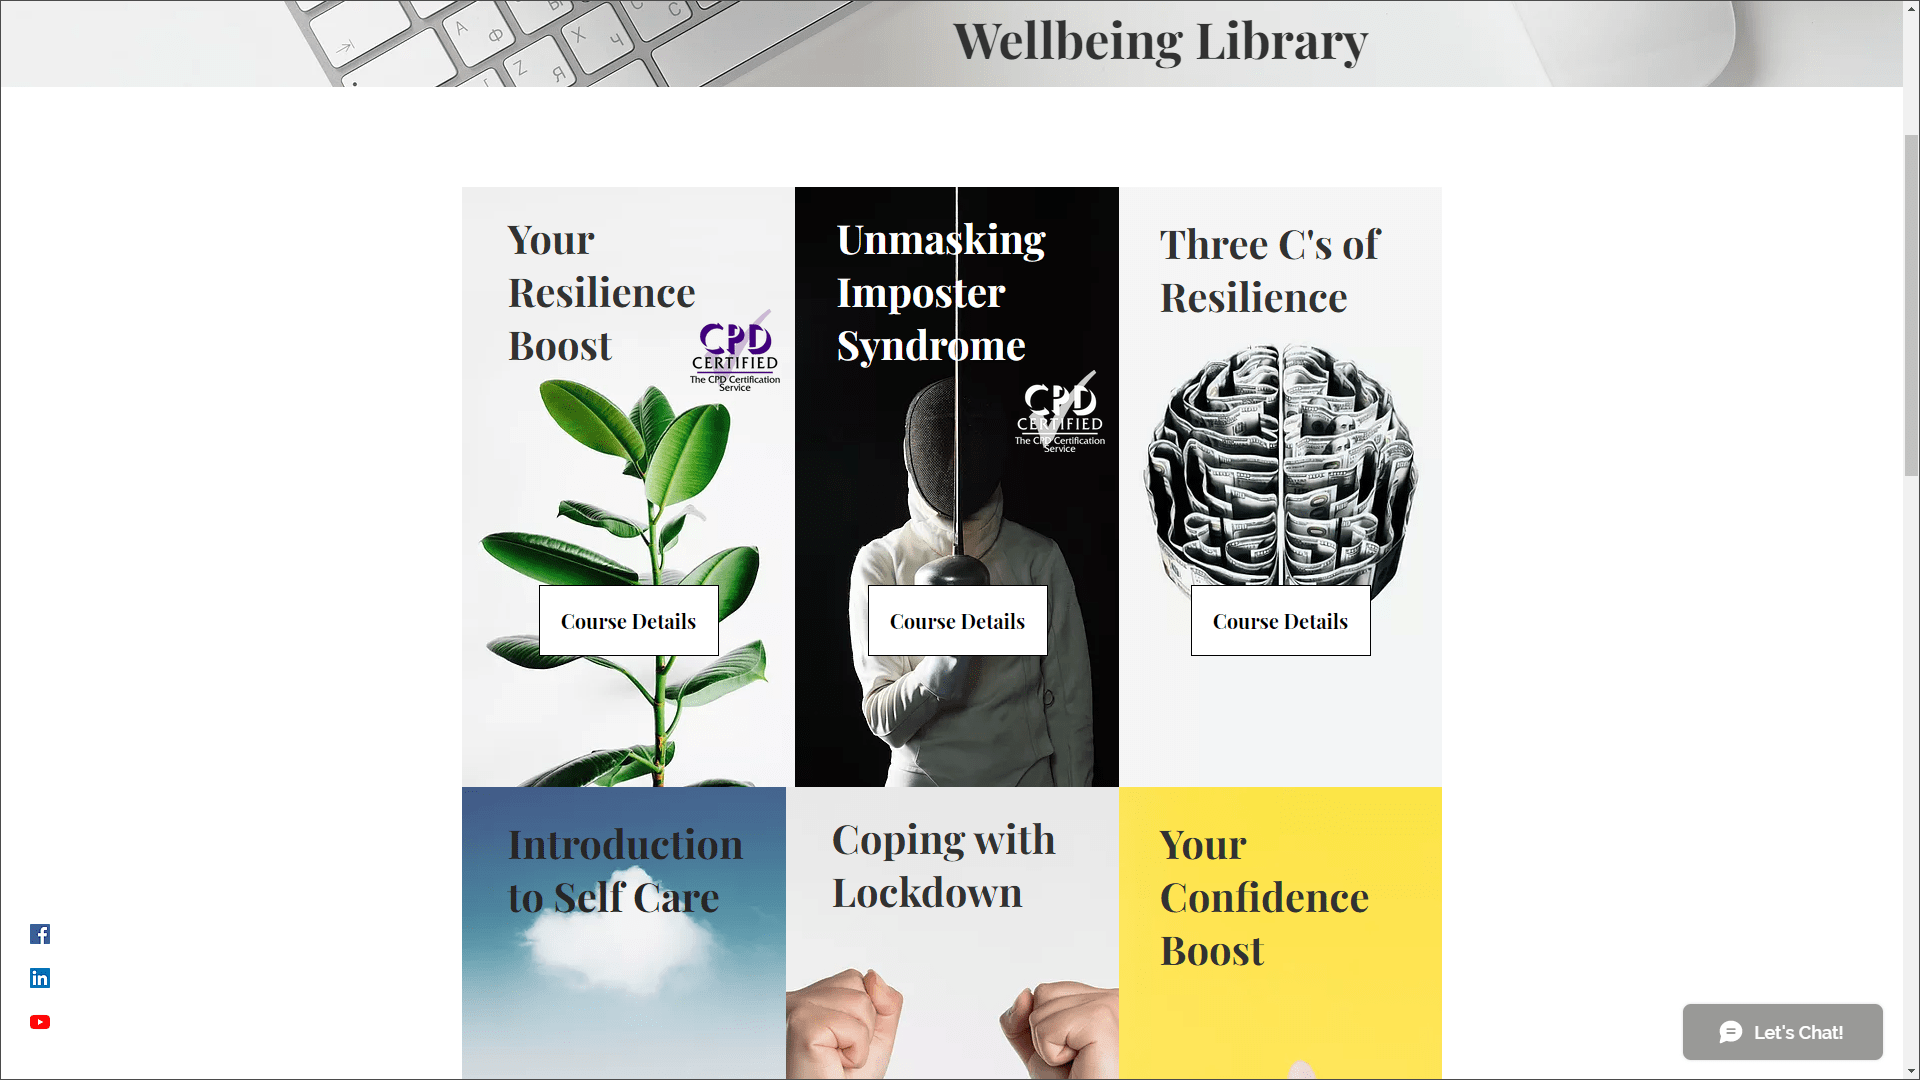 Beam Wellbeing Library